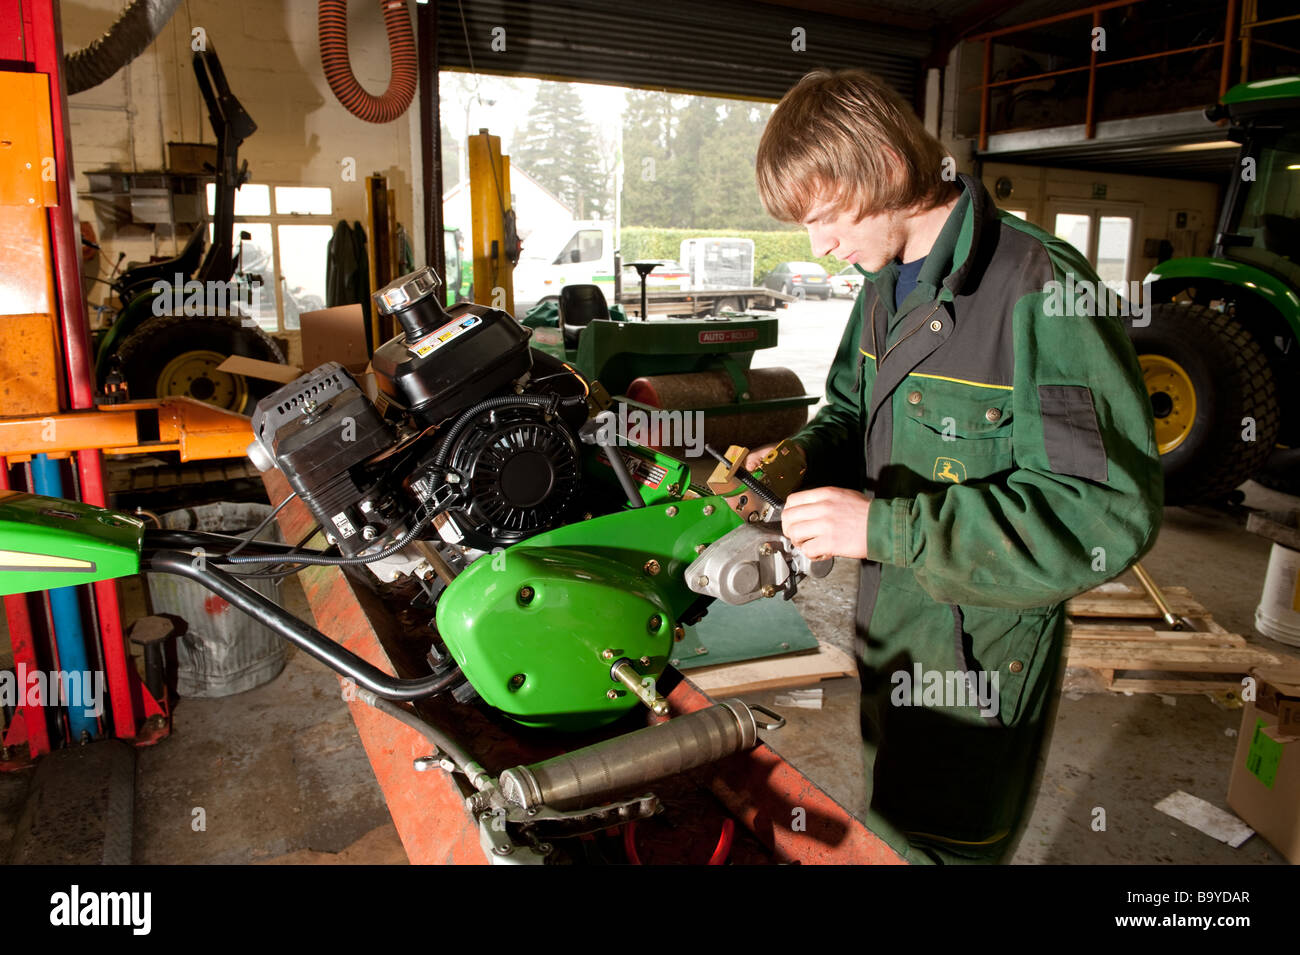 A young apprentice wearing overalls coveralls working on repairing a John Deere lawn mower in a garage workshop, - Stock Image